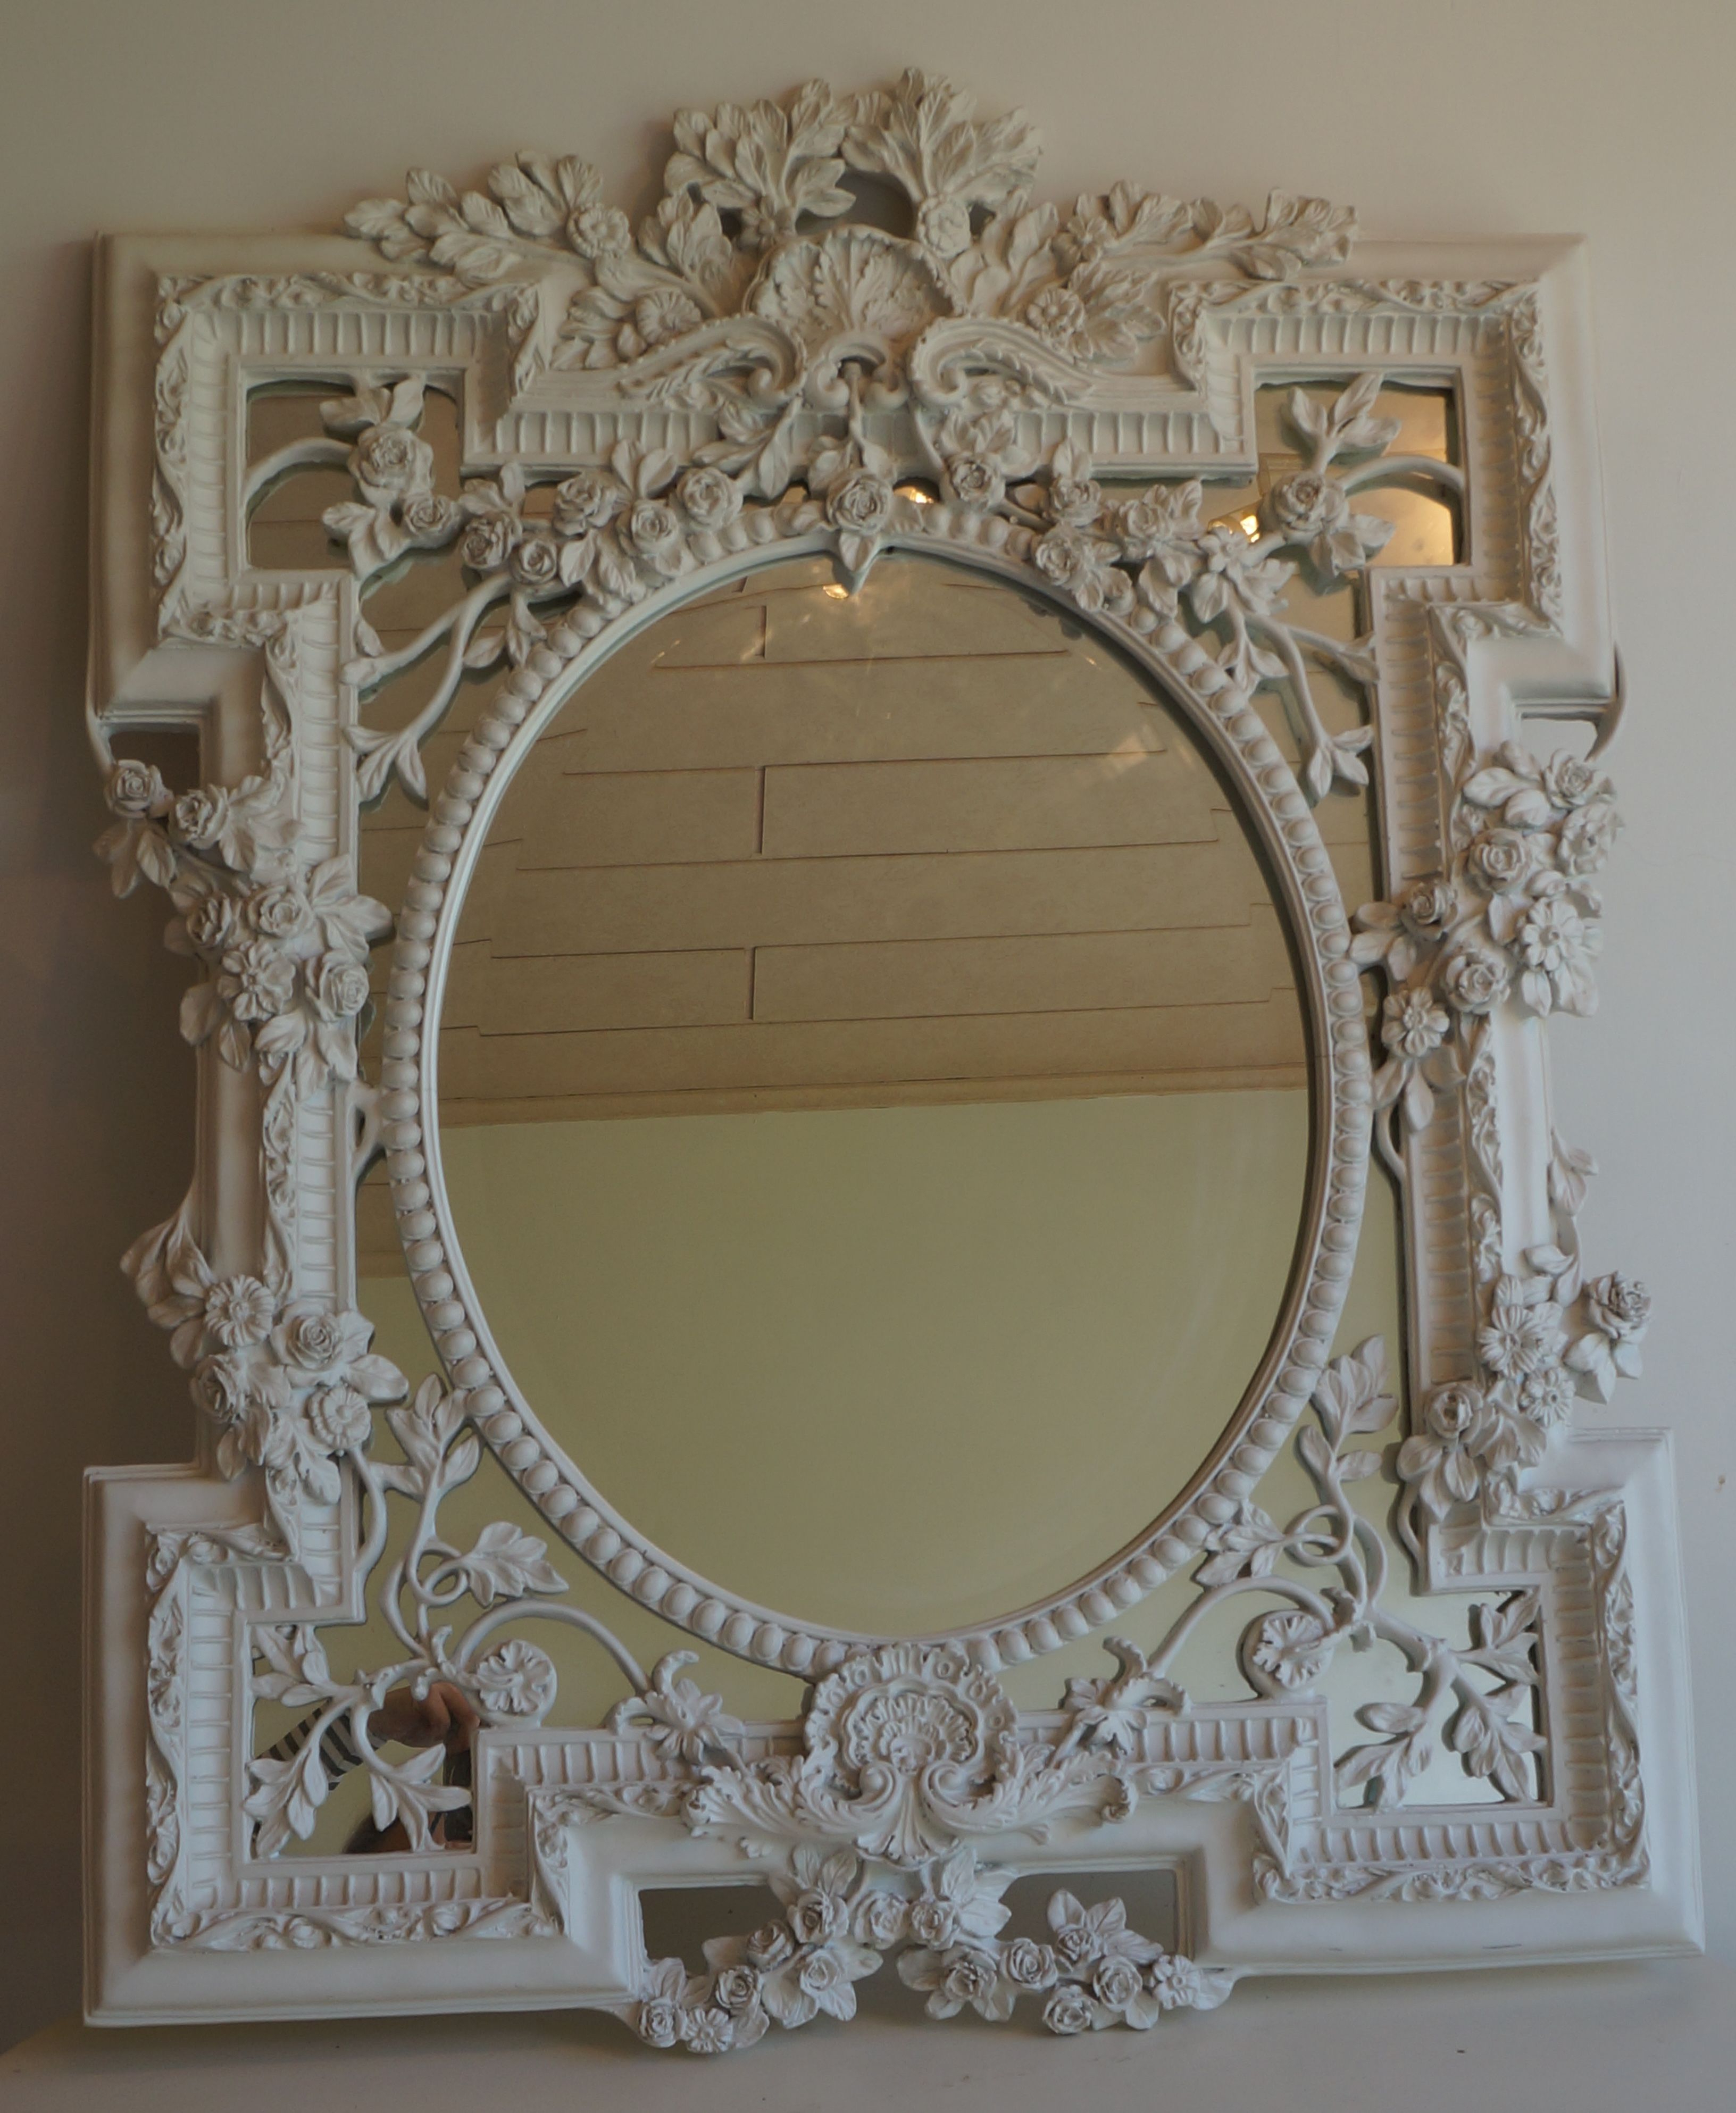 Cheap Large Wall Mirrors Within Famous Shabbychic White Painted Ornate Relief Decorative Large Wall (View 9 of 20)